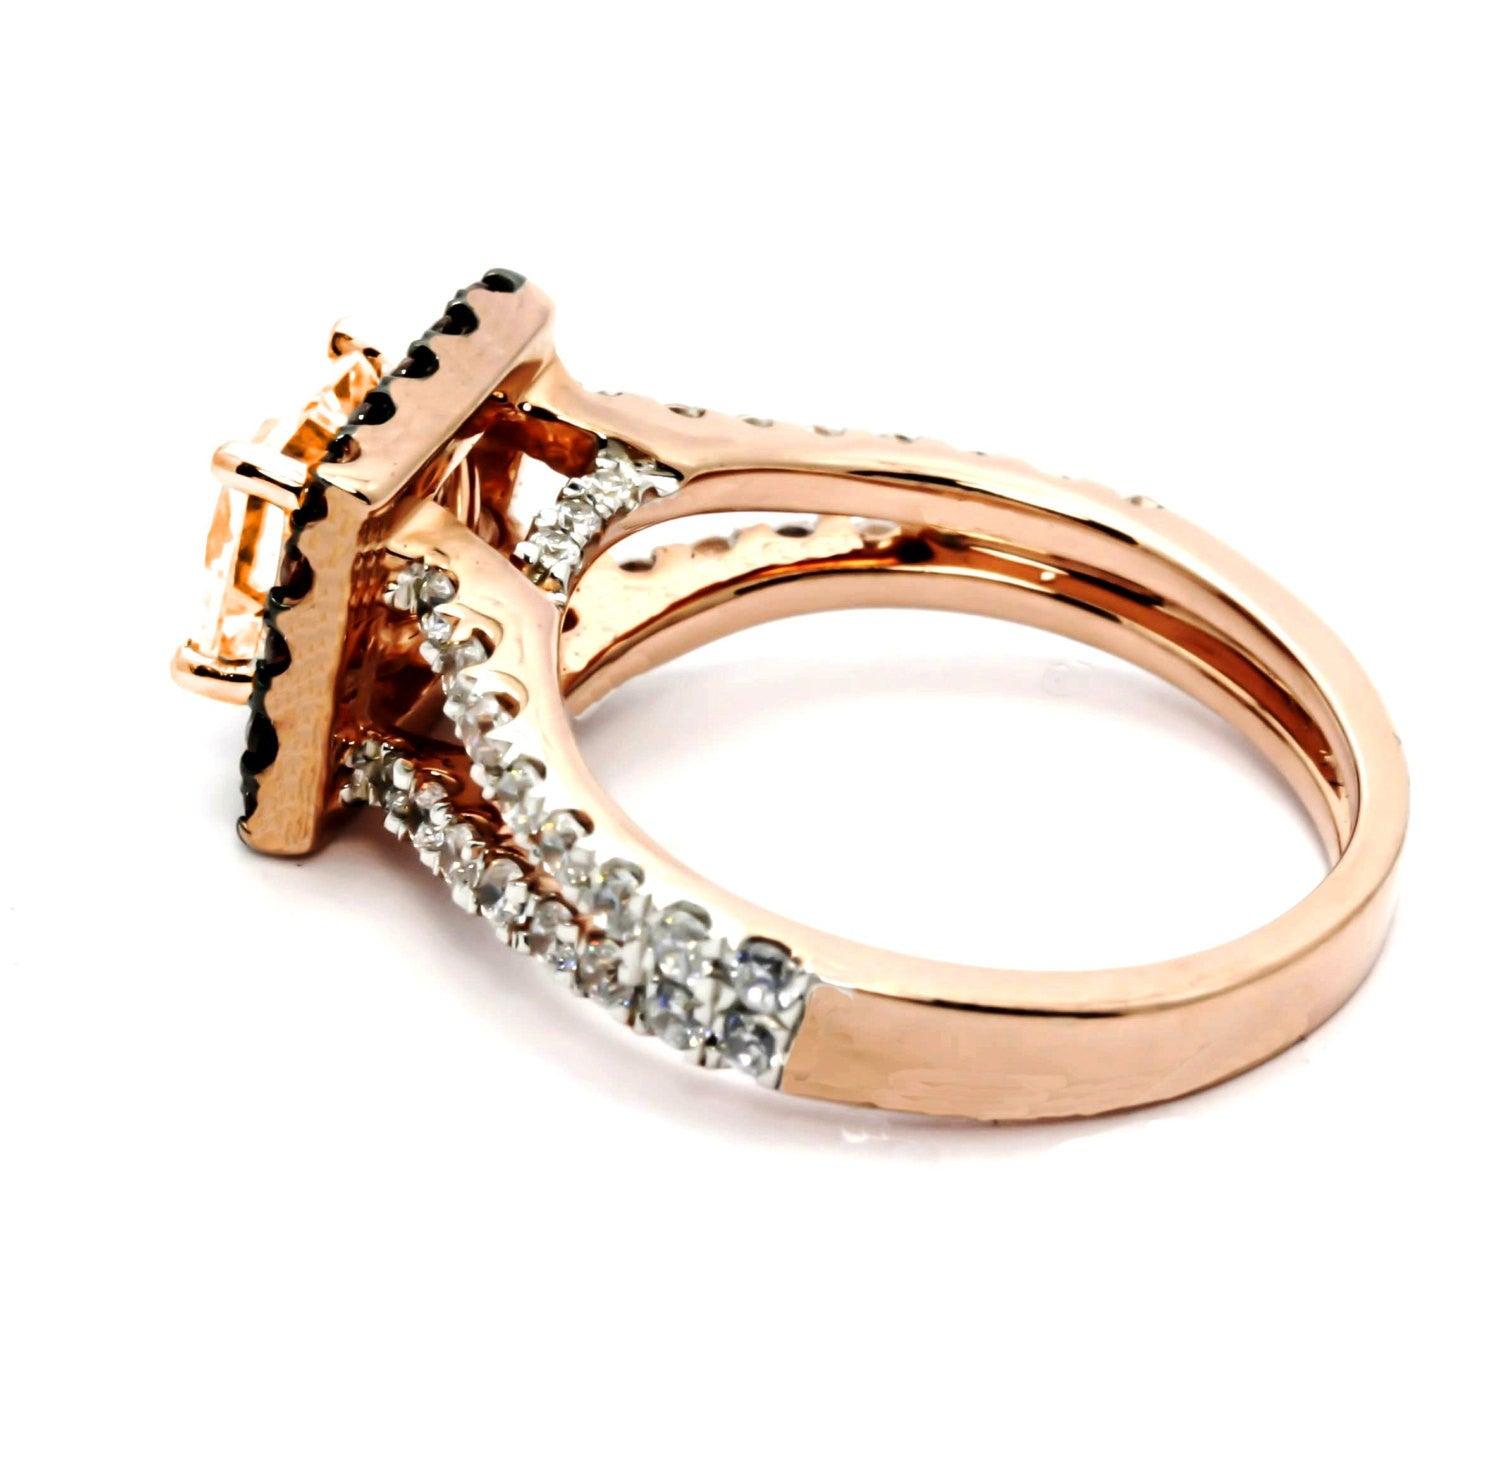 Unique 1.25 Carat Cushion Cut Morganite, White & Brown Diamonds, 14k Rose Gold, Split Shank, Square Floating Halo Engagement Ring - MG94652